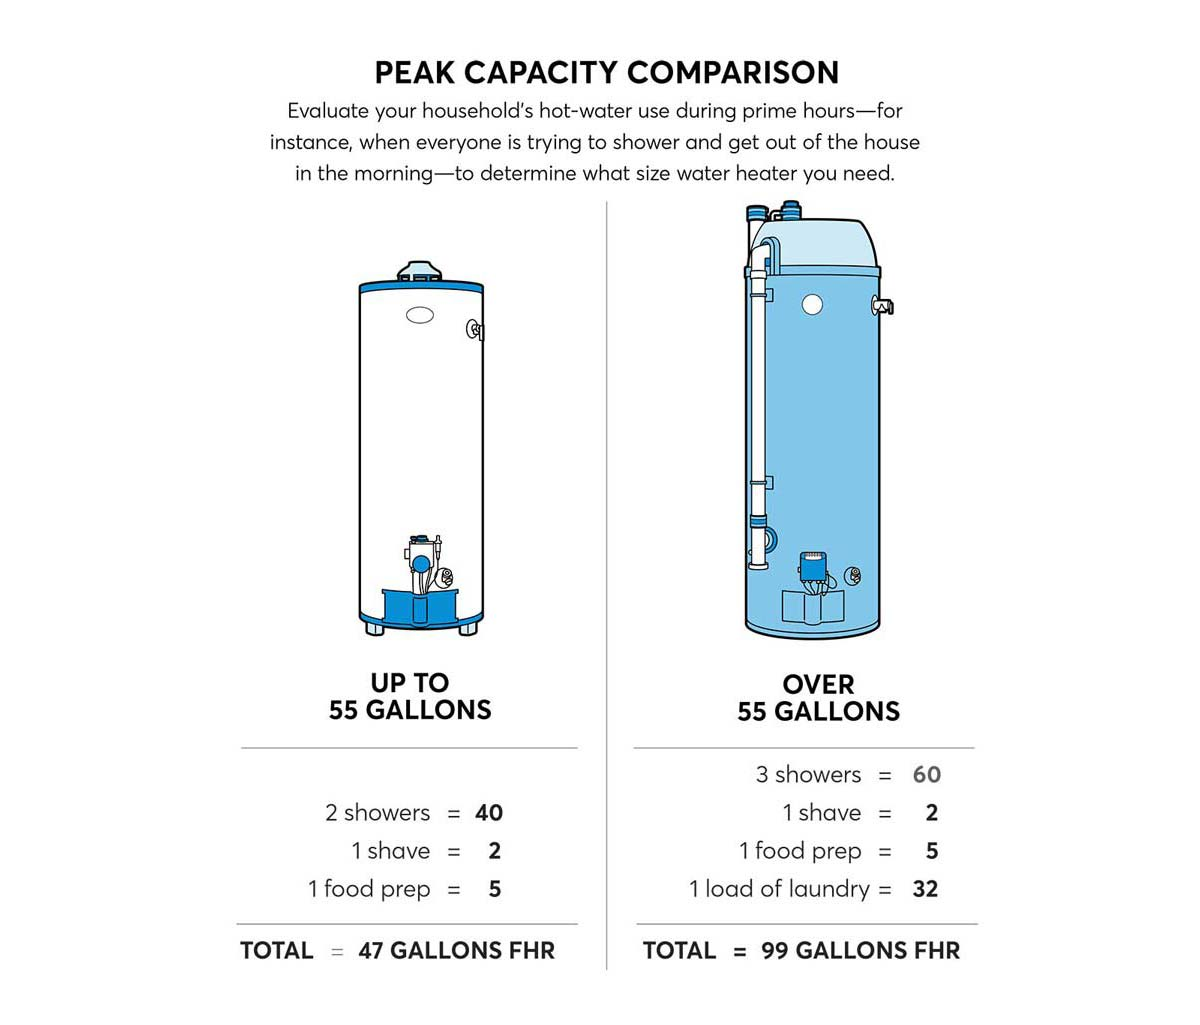 A peak capacity comparison between a small (up to 55 gallons) and large water heater (over 55 gallons).